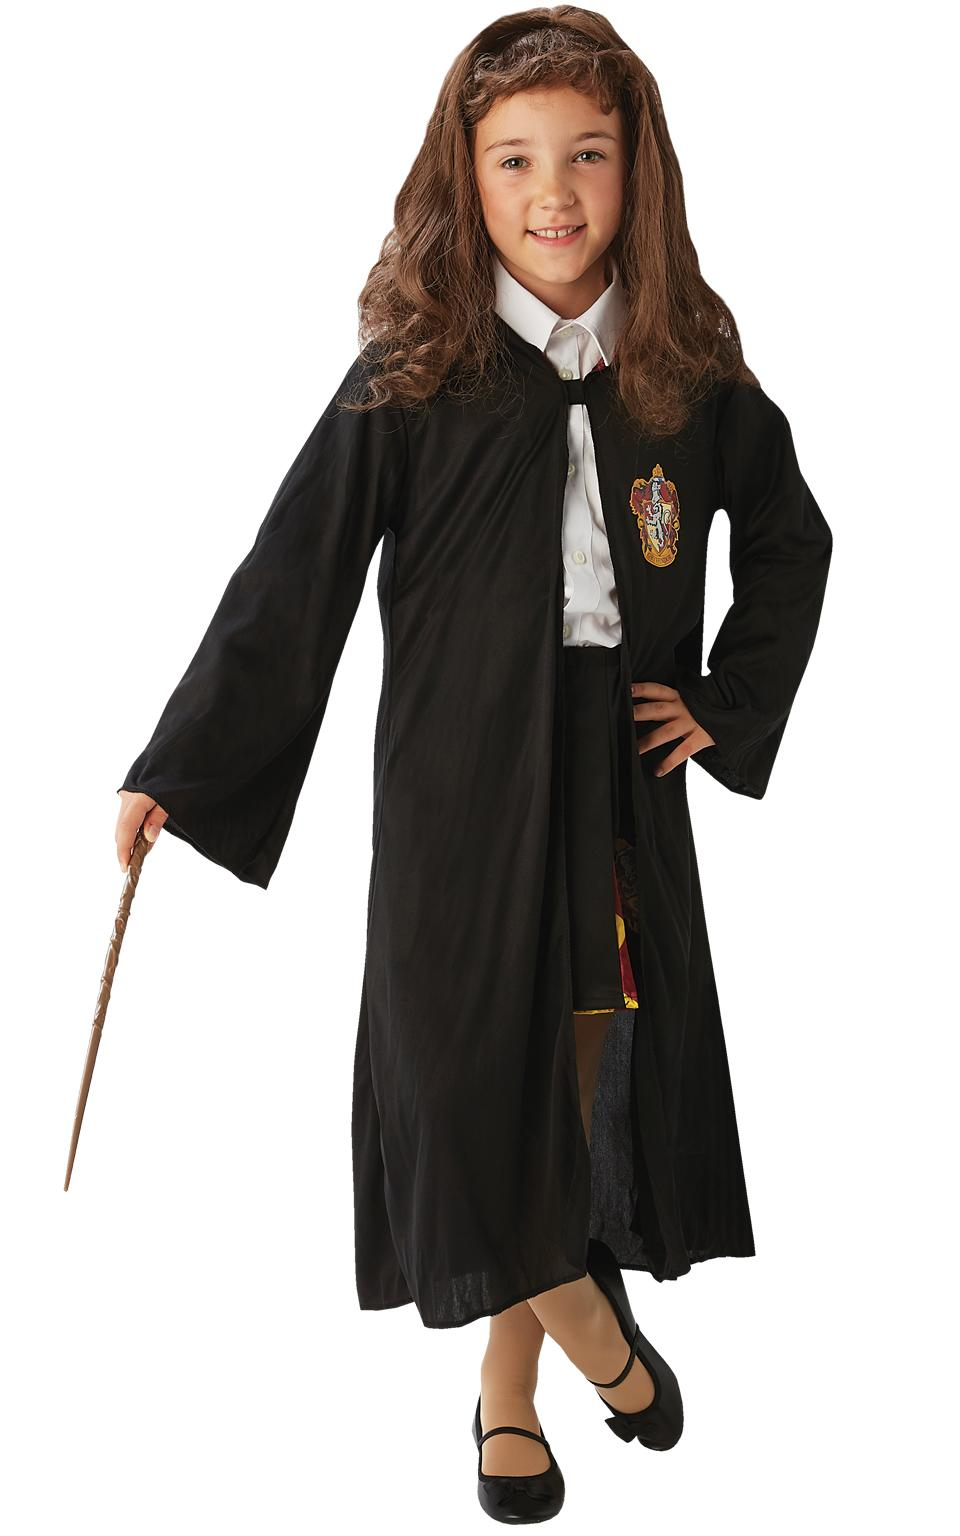 Hermione Granger Costume & Wig Kit